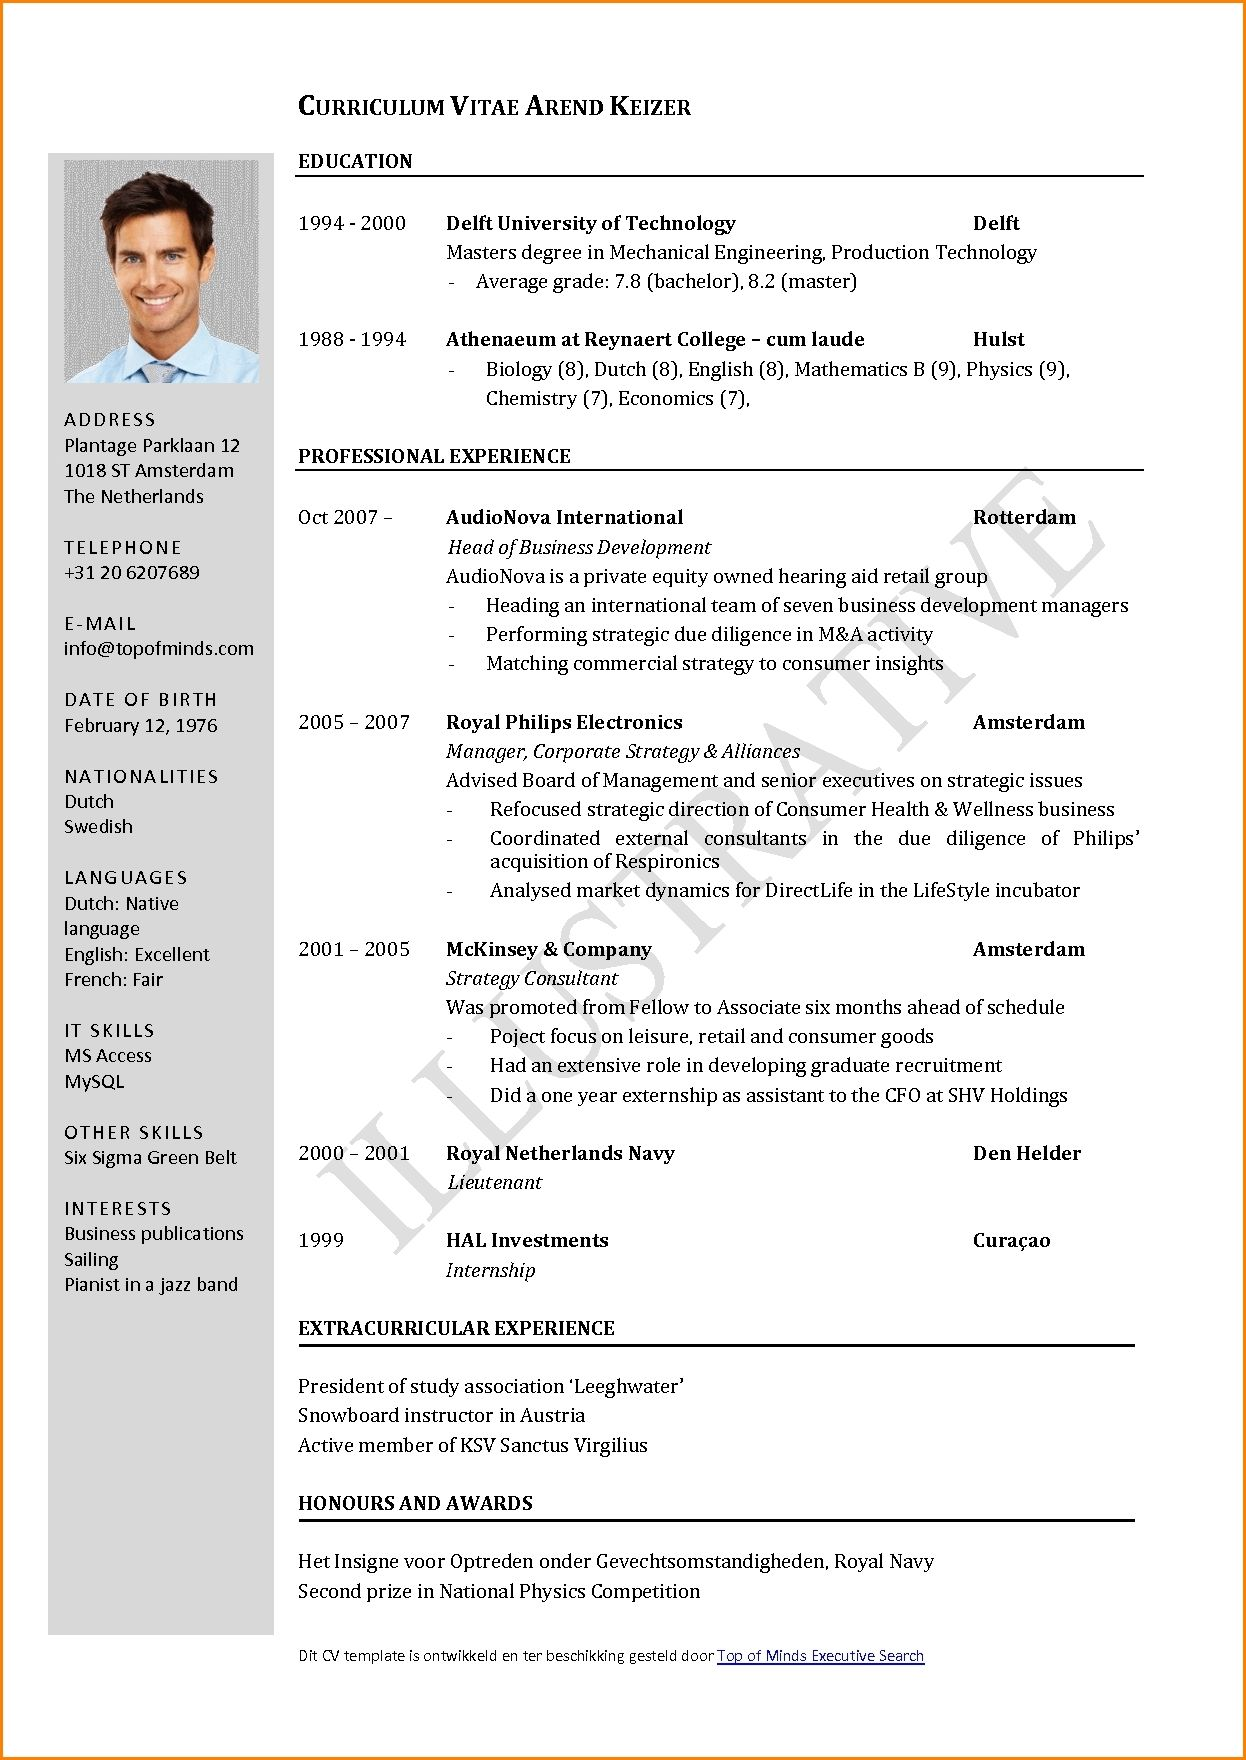 Resume Examples Me Nbspthis Website Is For Sale Nbspresume Examples Resources And Information Job Resume Format Free Resume Template Download Curriculum Vitae Template